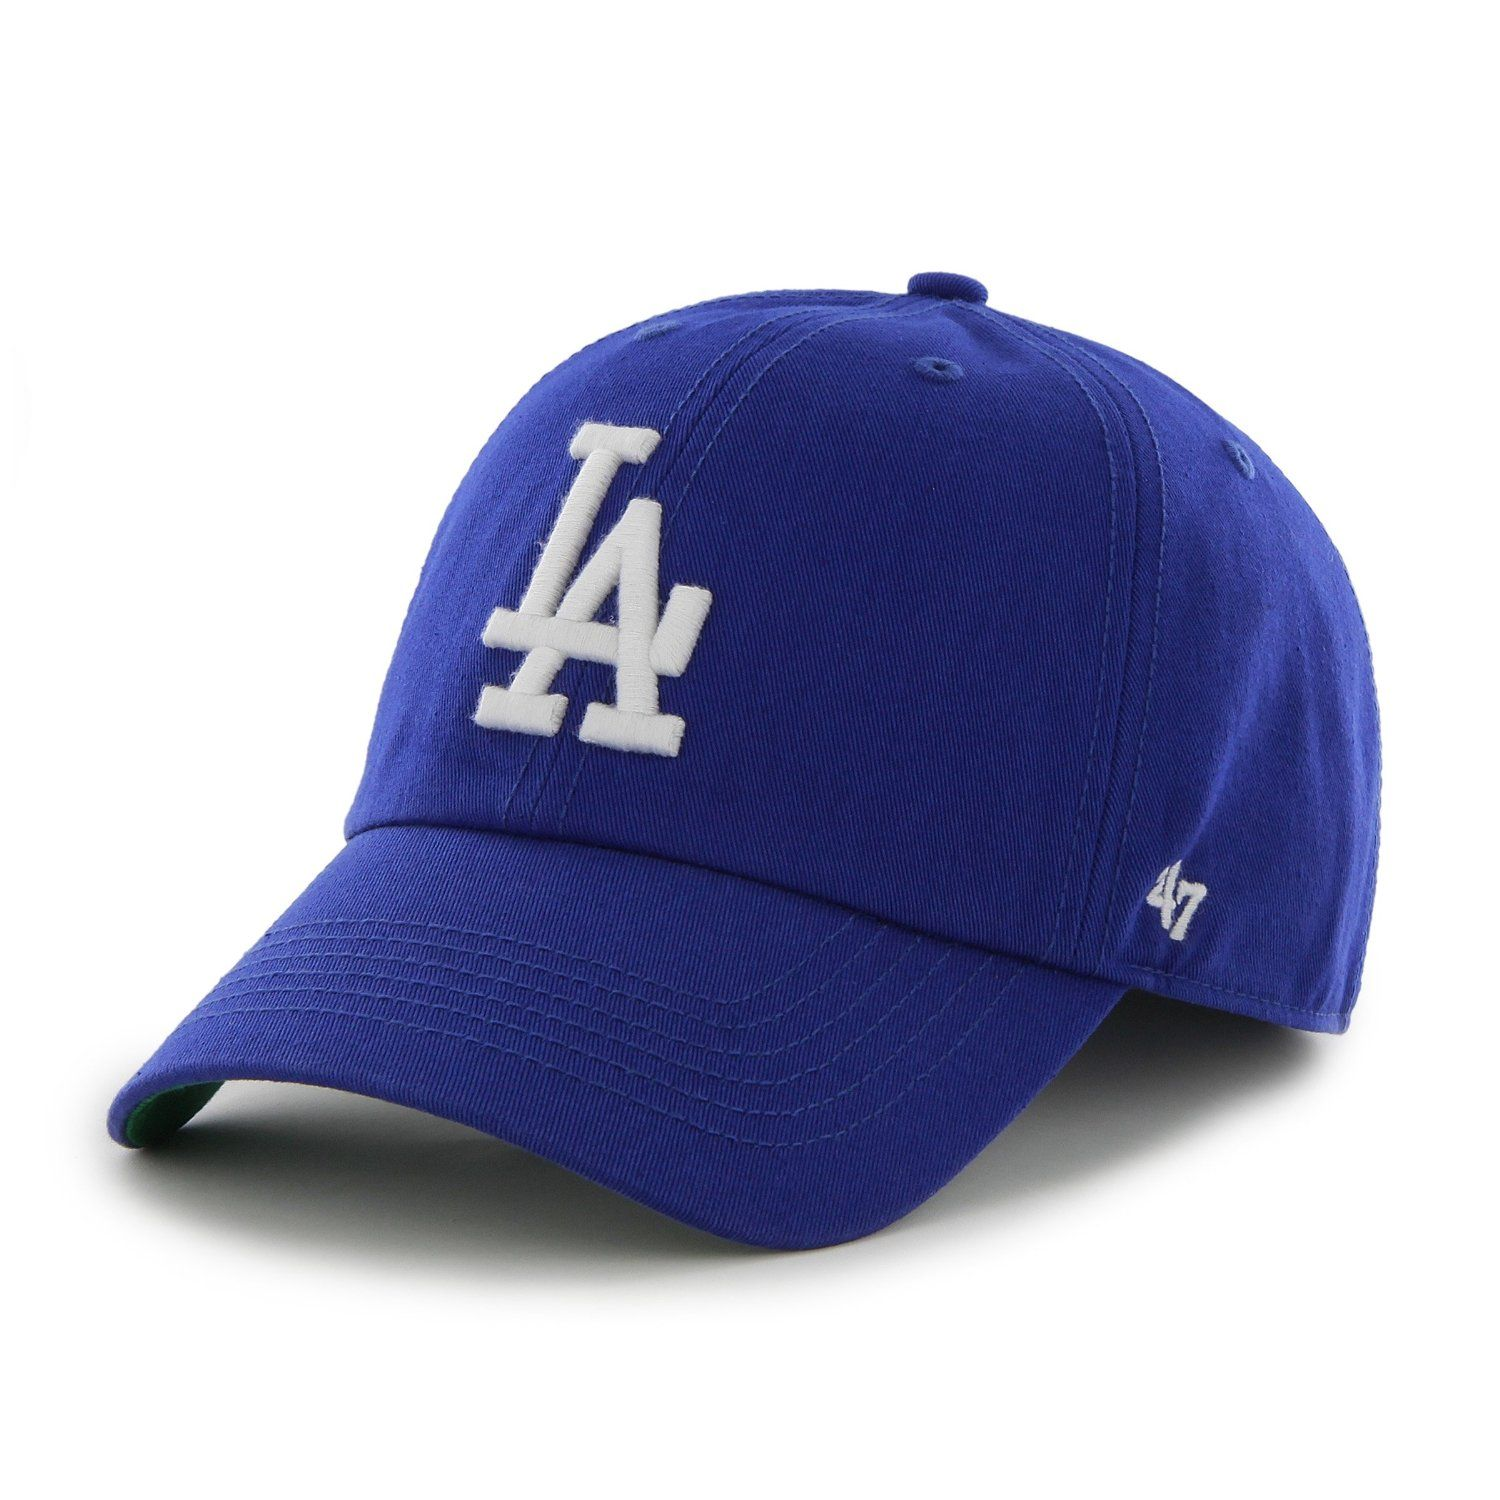 MLB Los Angeles Dodgers  47 Franchise Fitted Hat f0b0c35c355